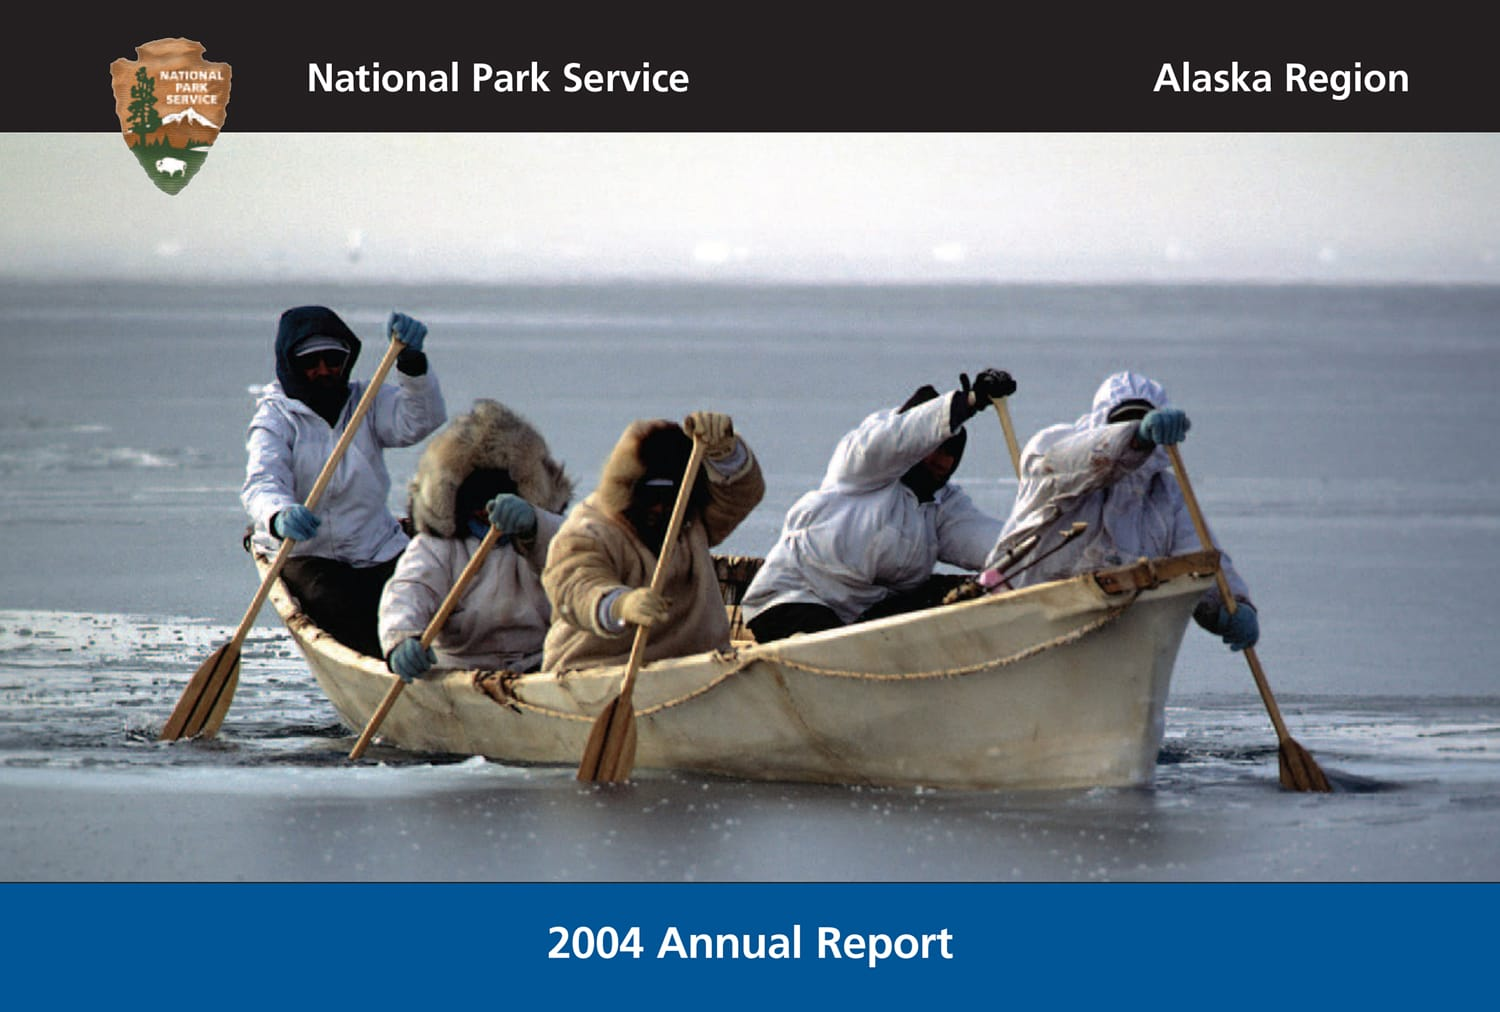 U.S. National Parks Service Annual Report